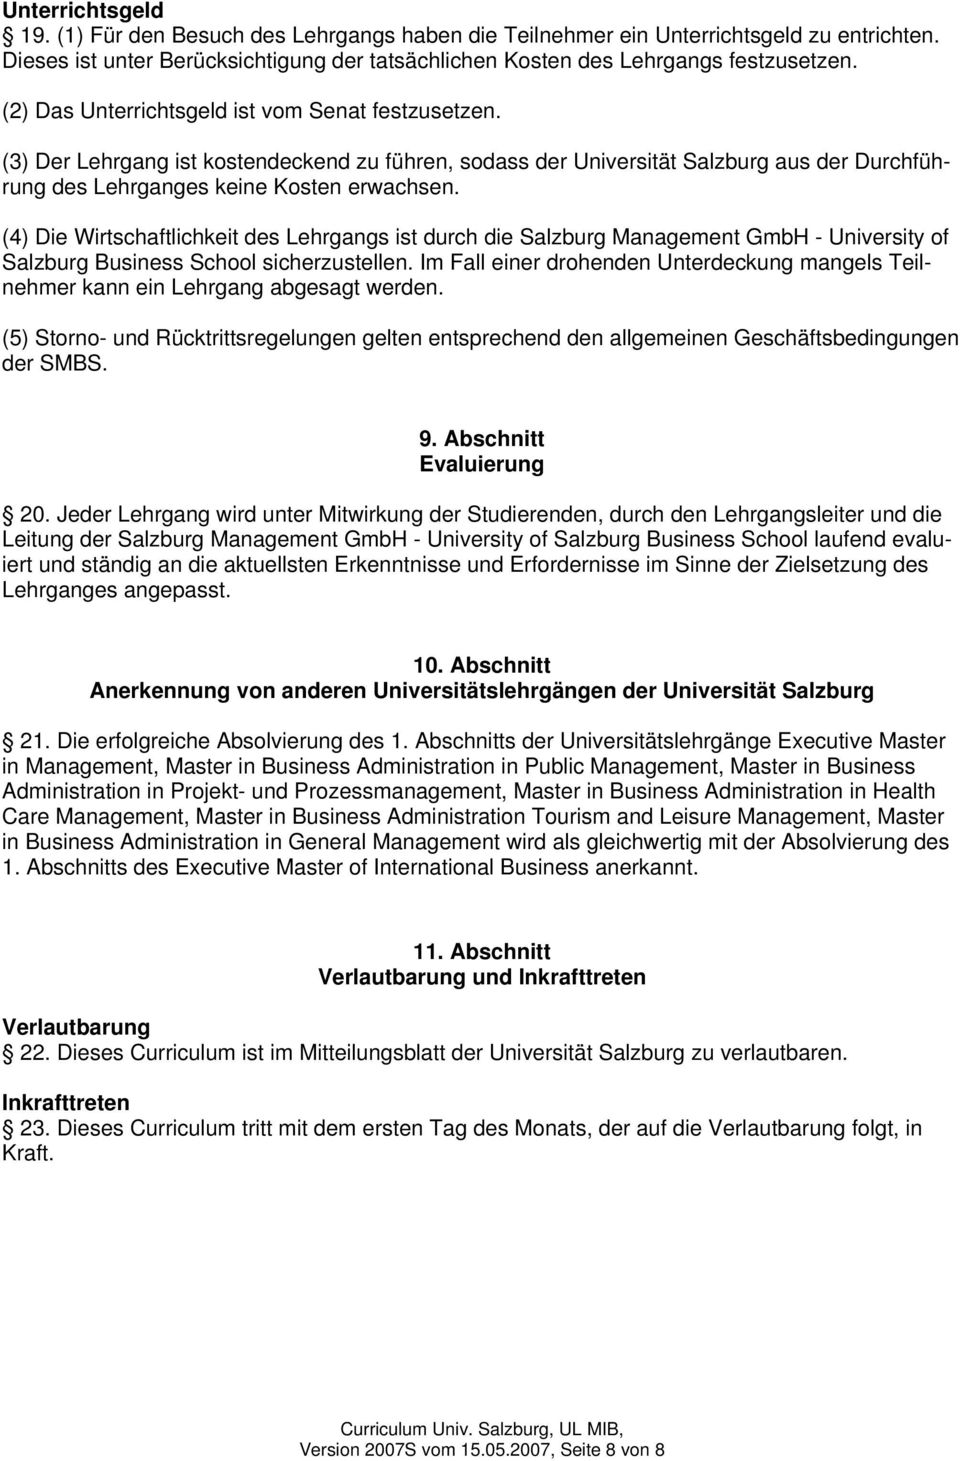 (4) Die Wirtschaftlichkeit des Lehrgangs ist durch die Salzburg Management GmbH - University of Salzburg Business School sicherzustellen.